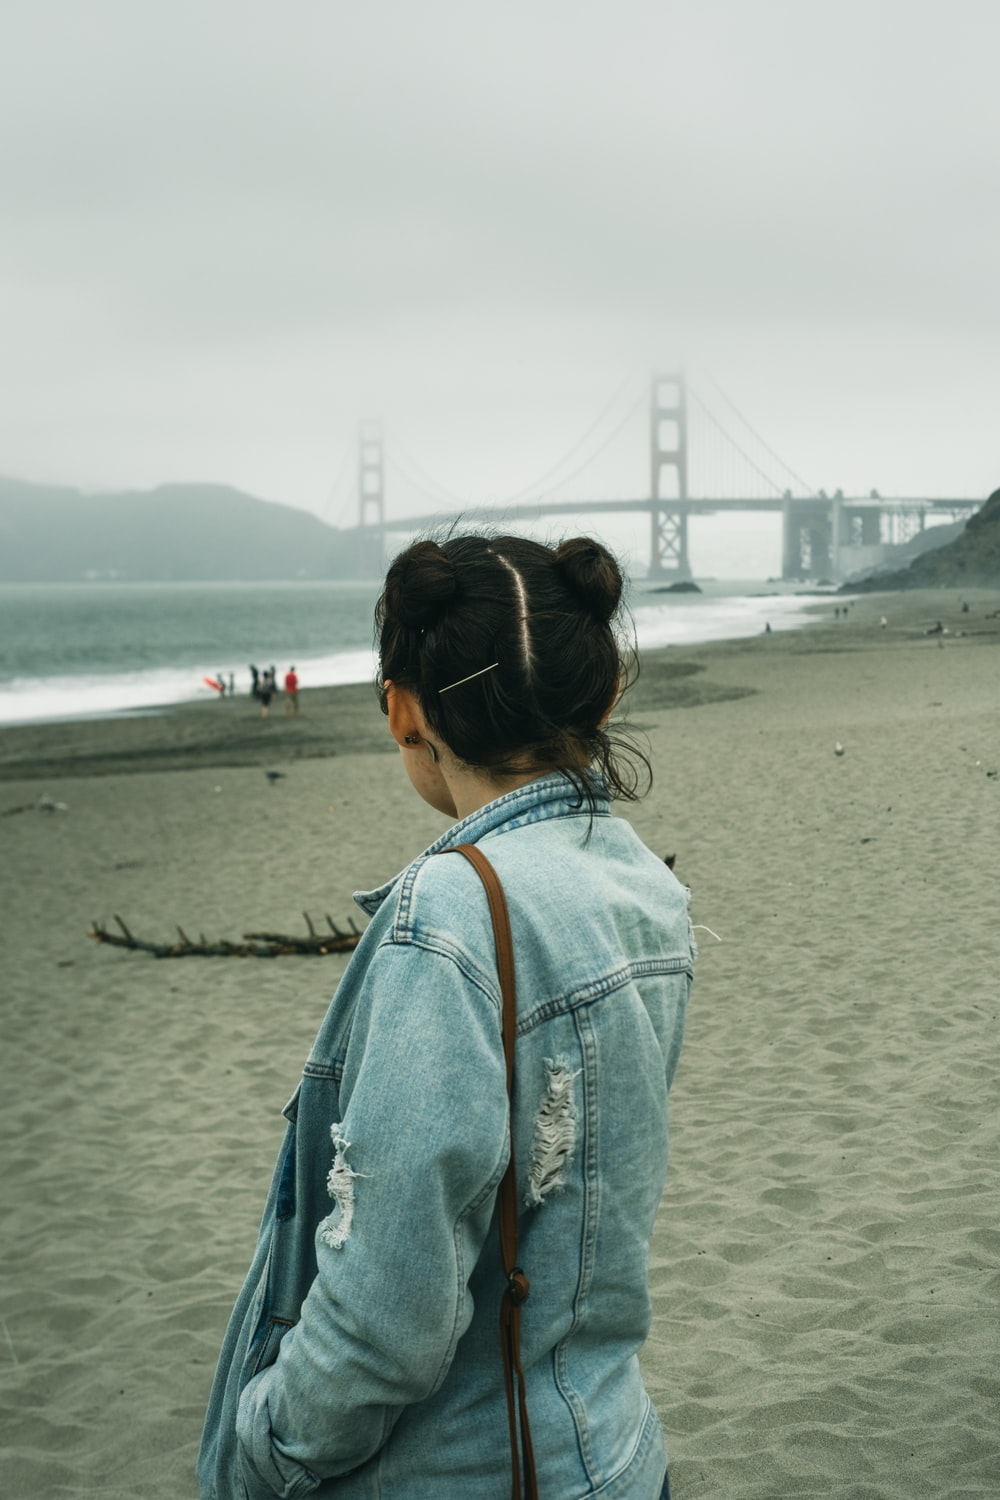 woman in blue denim jacket standing on beach during daytime